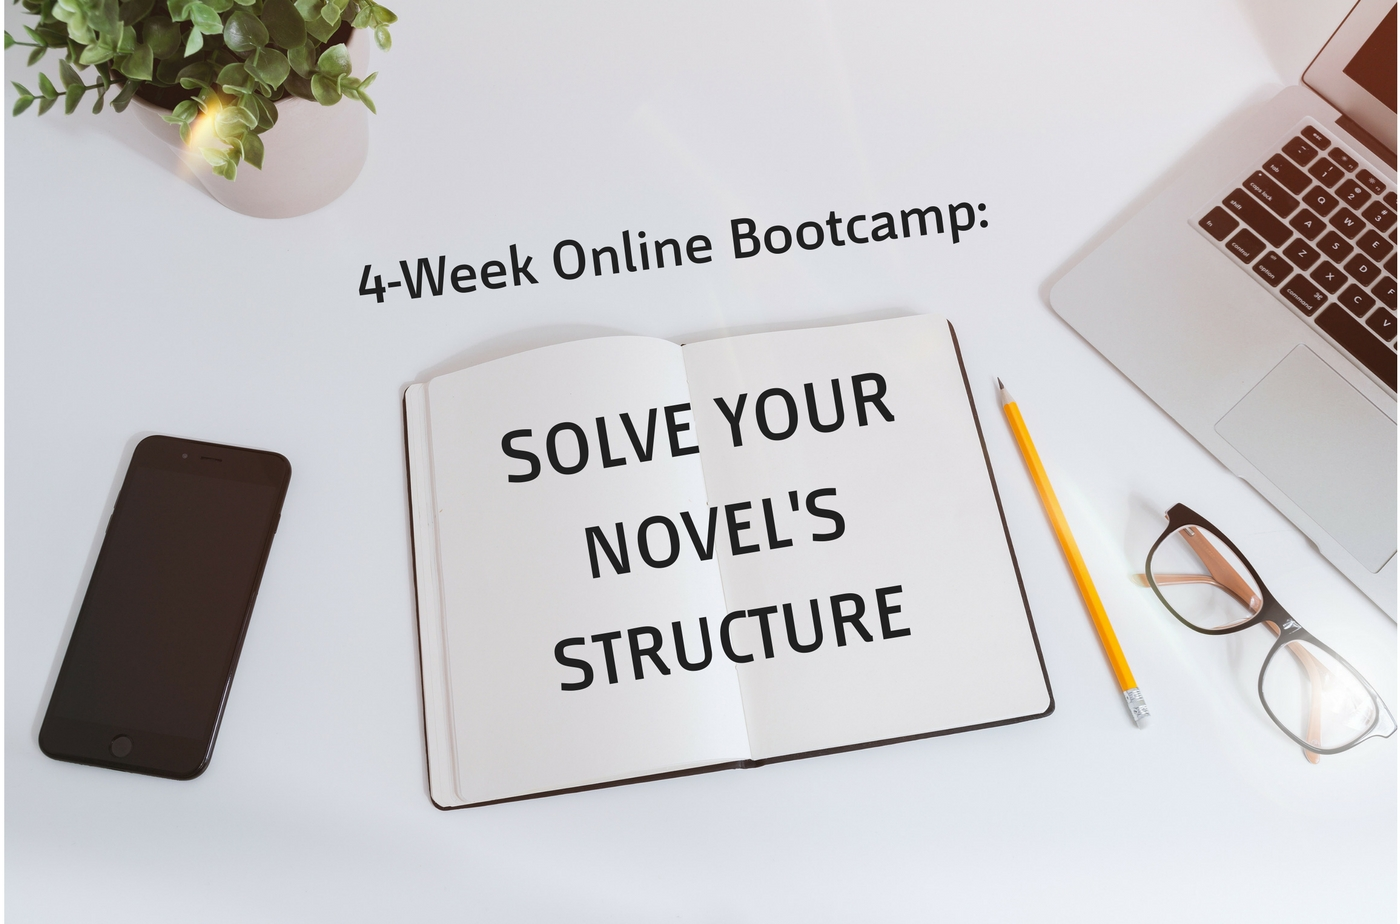 Catapult online classes: Stephanie Feldman, 4-Week Online Bootcamp: Solve Your Novel's Structure, Novel, Fiction, Bootcamp